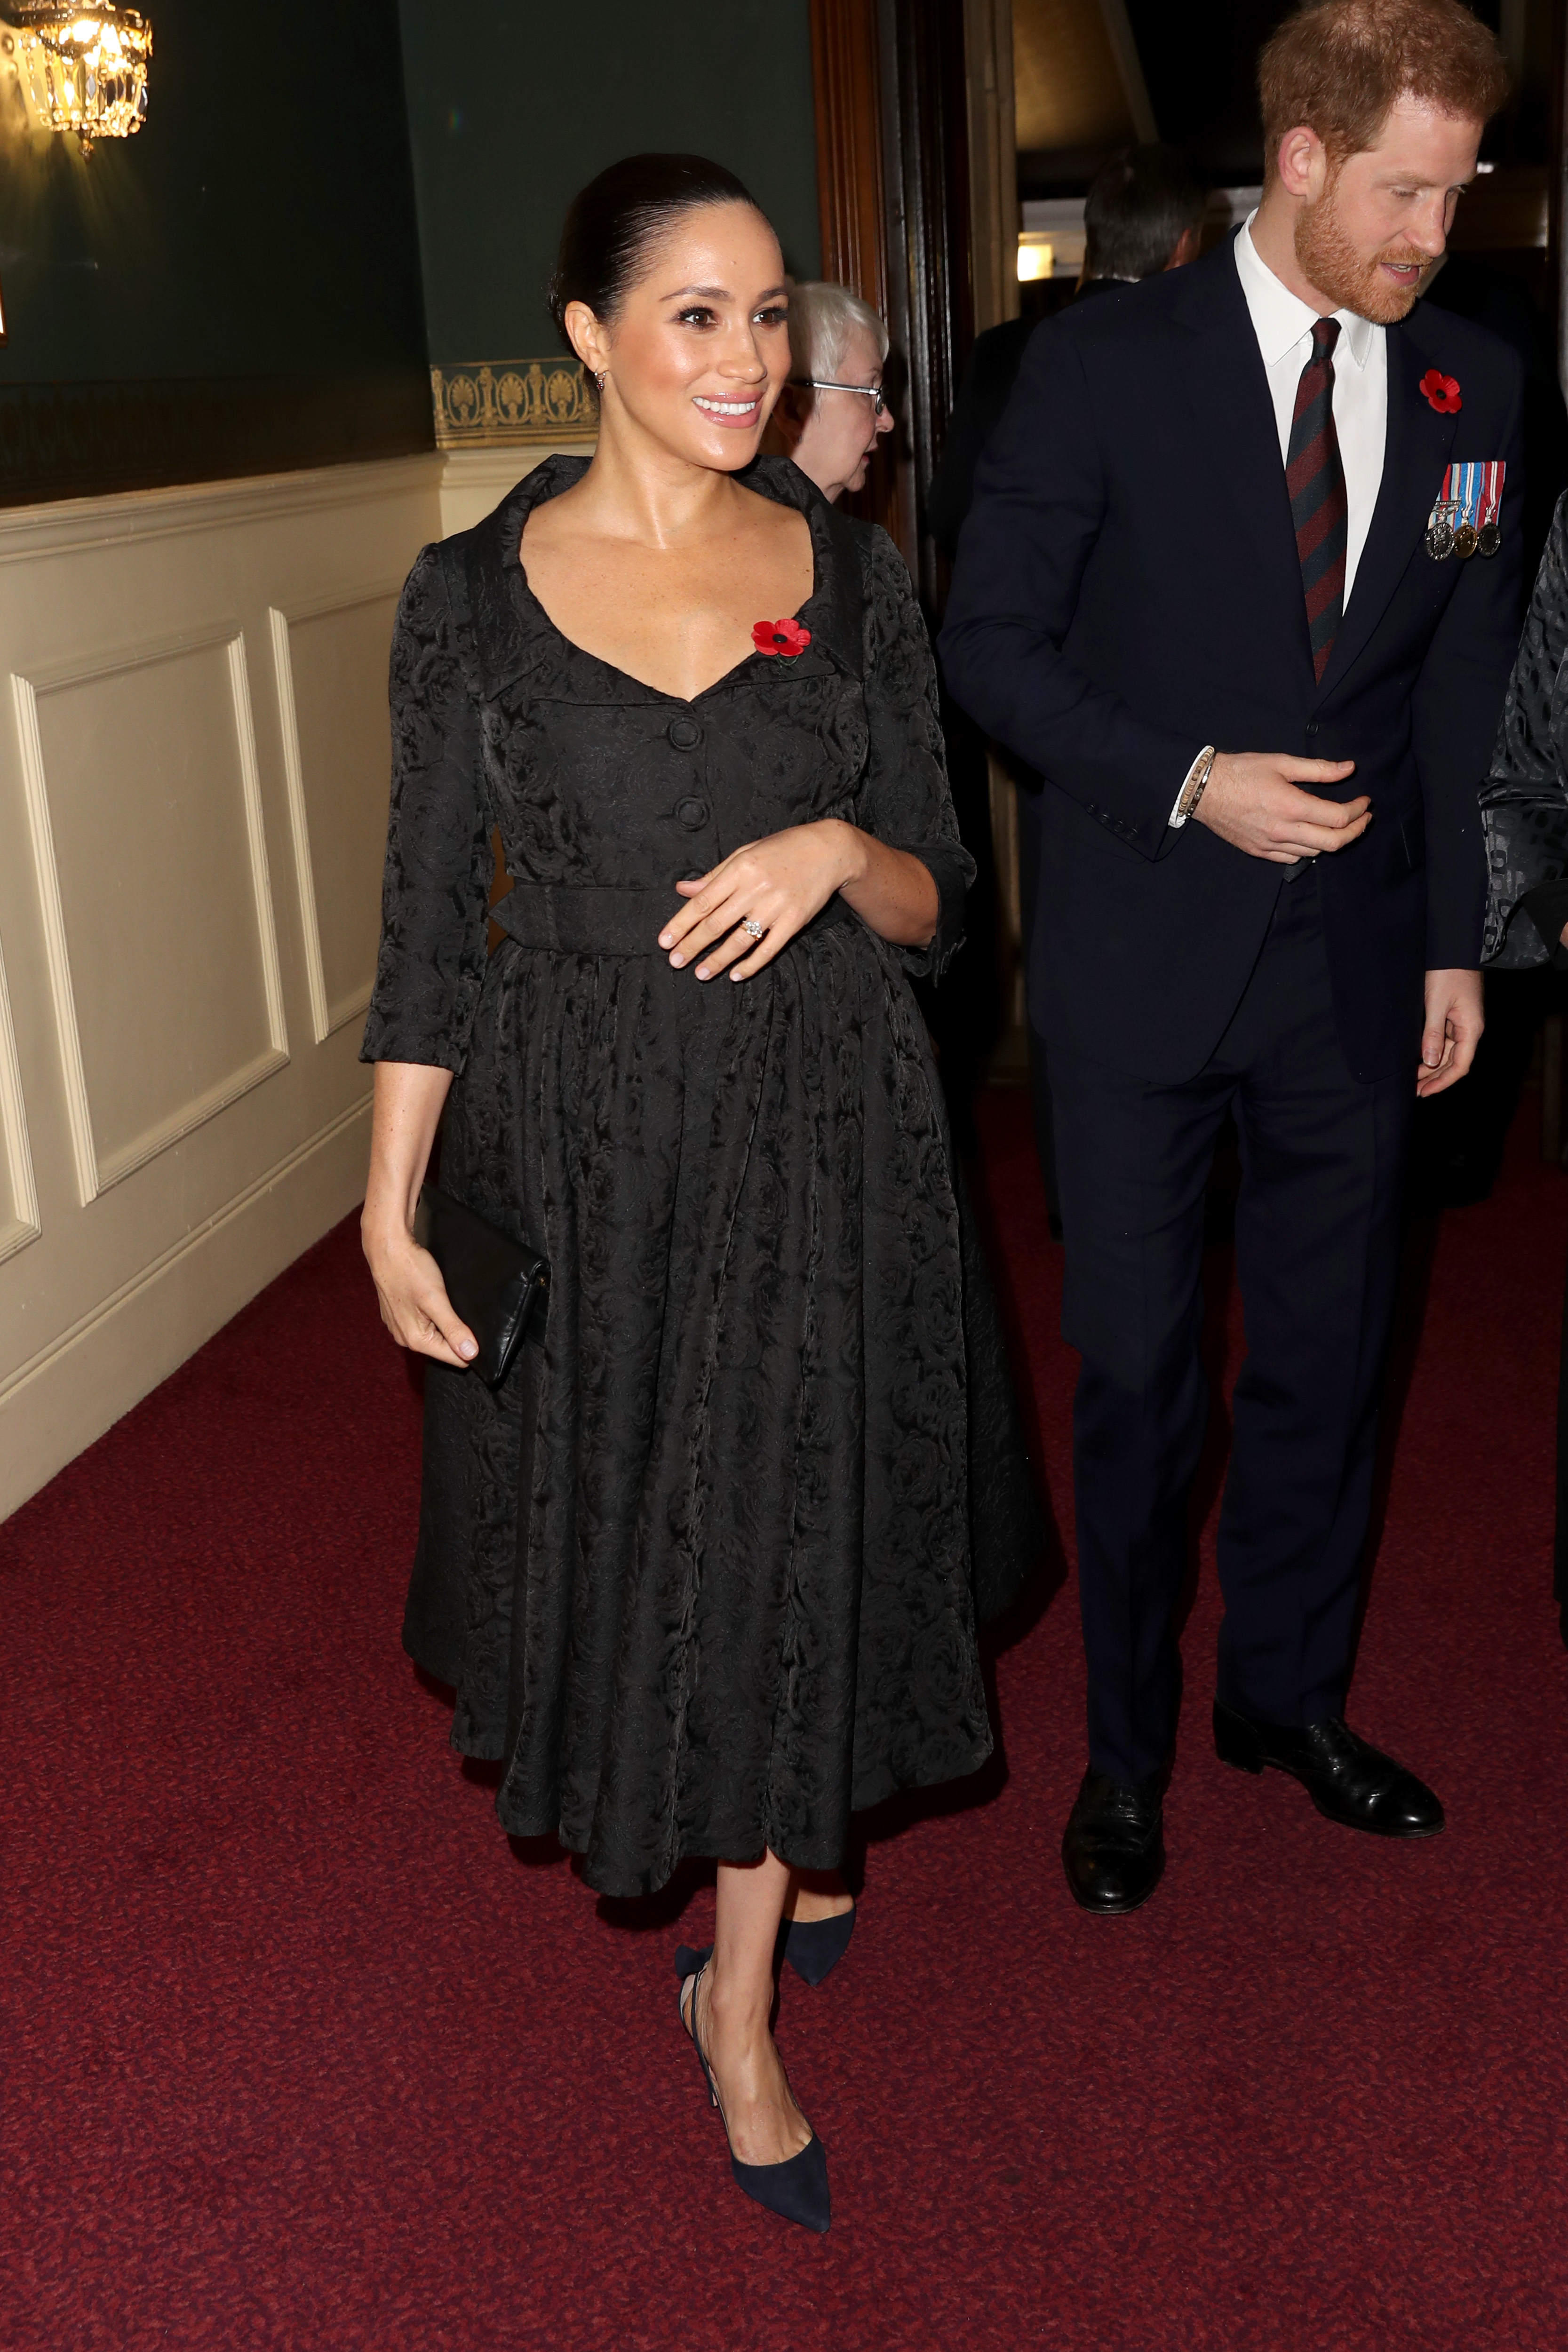 meghan and harry attend festival of remembrance meghan s mirror https lh3 googleusercontent com proxy beuowemu5sh r03gcu6t3h nsmlbphmjalfy35oy4alxuwvrb3rhstzp3edazdcuocqcnepa7jhaf ynusql 5kei48mhrtselhu3qufptcsb3pi k7hiff41zfsgls